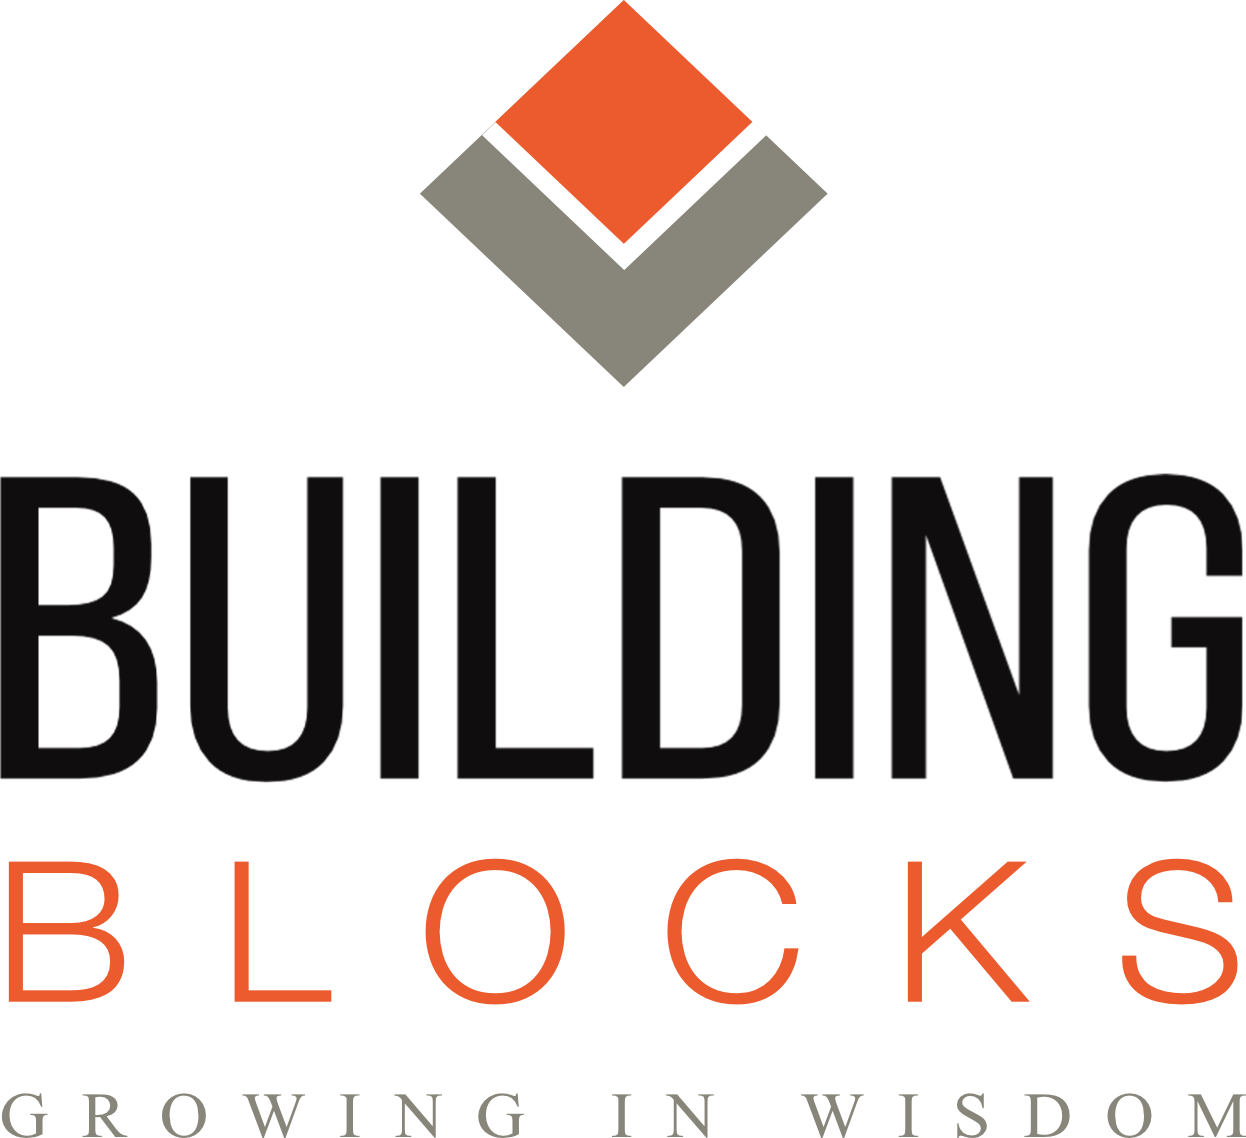 Building Blocks_logo image